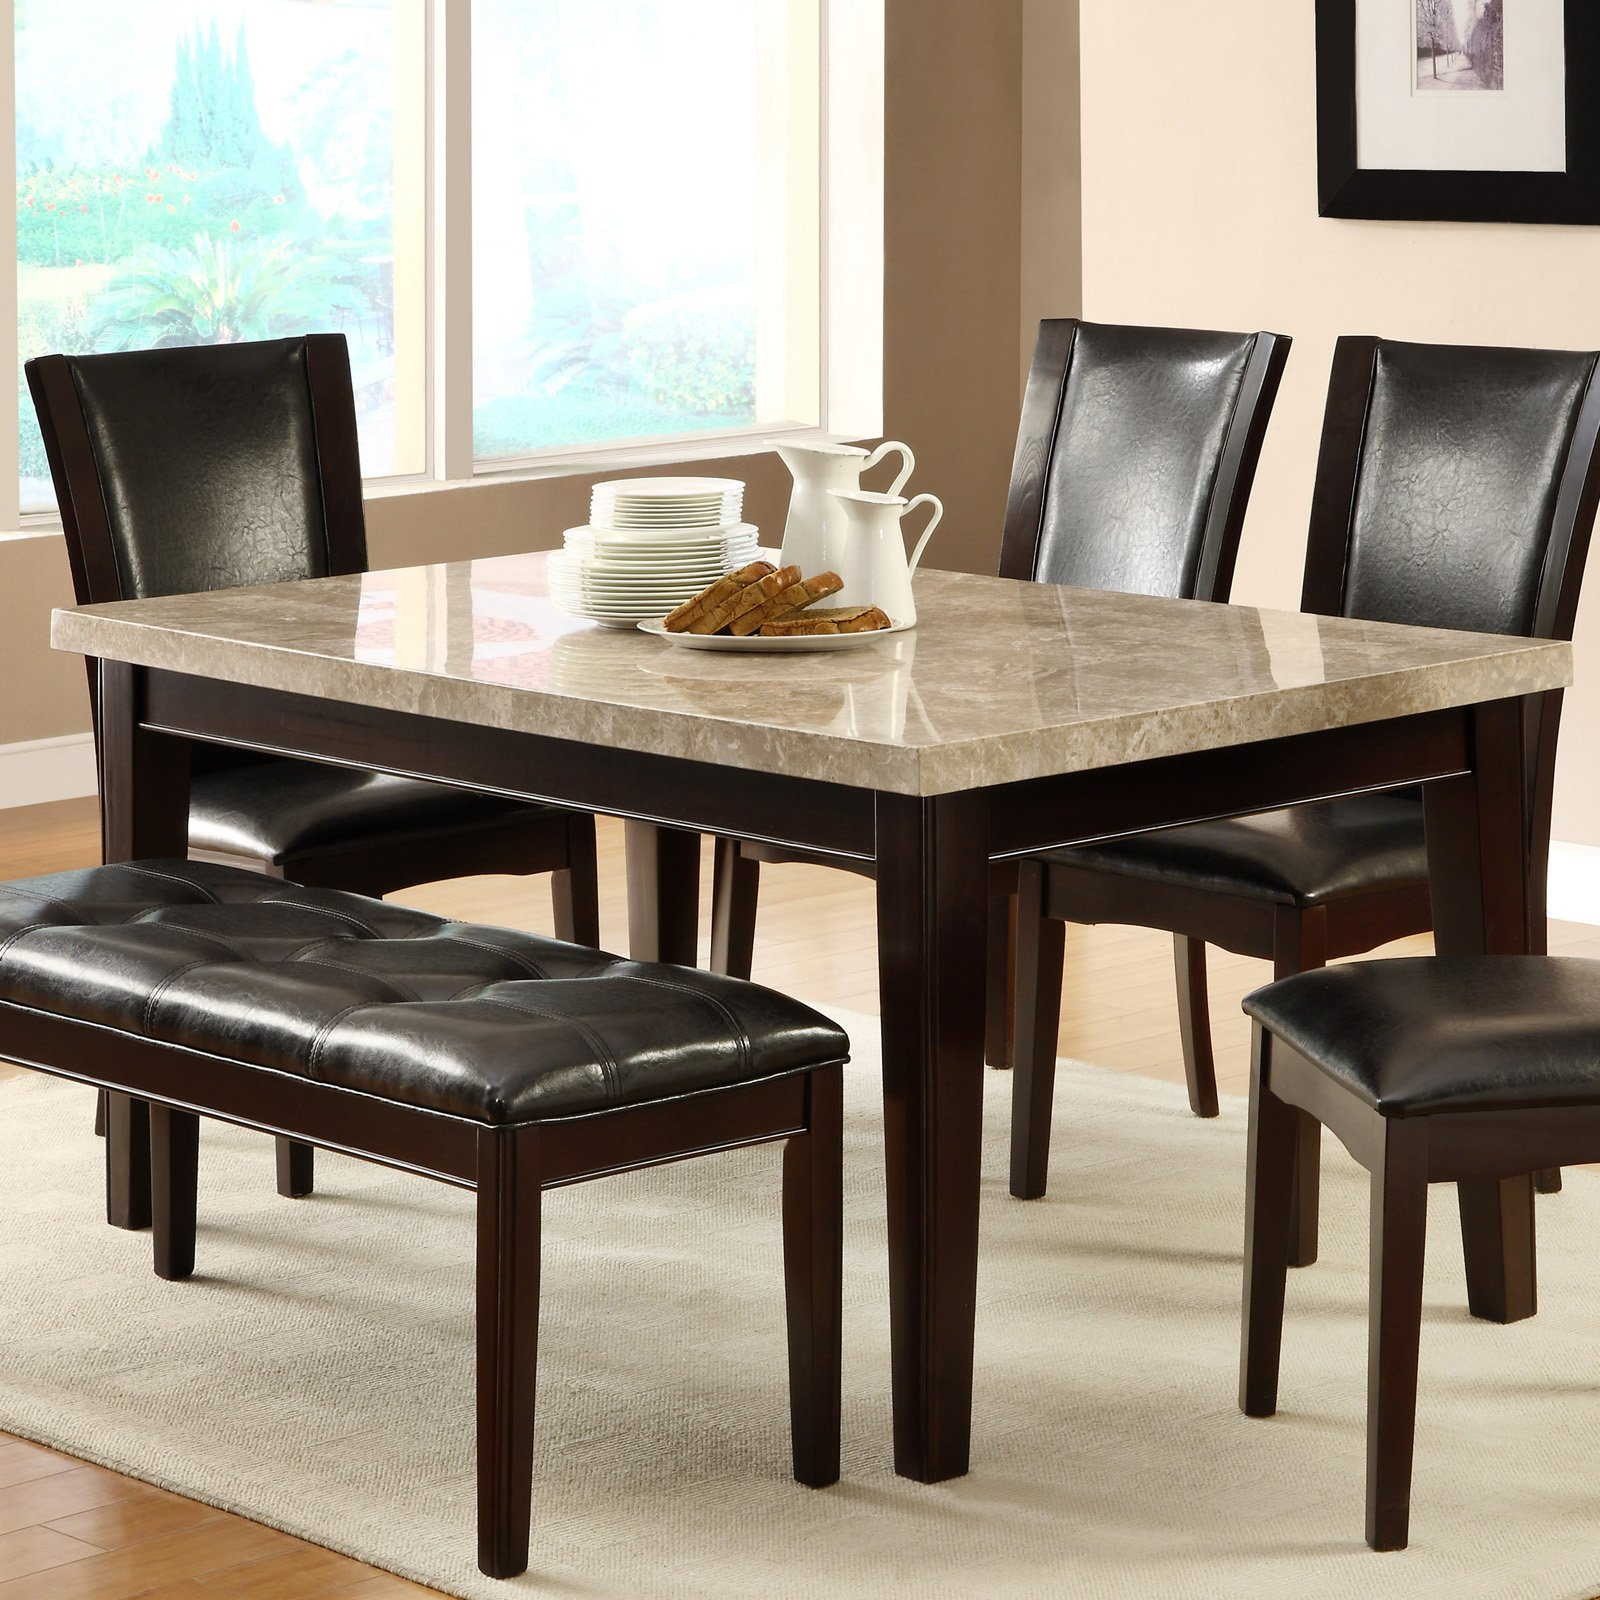 Homelegance Hahn Ivory Marble-Top Dining Table - Espresso